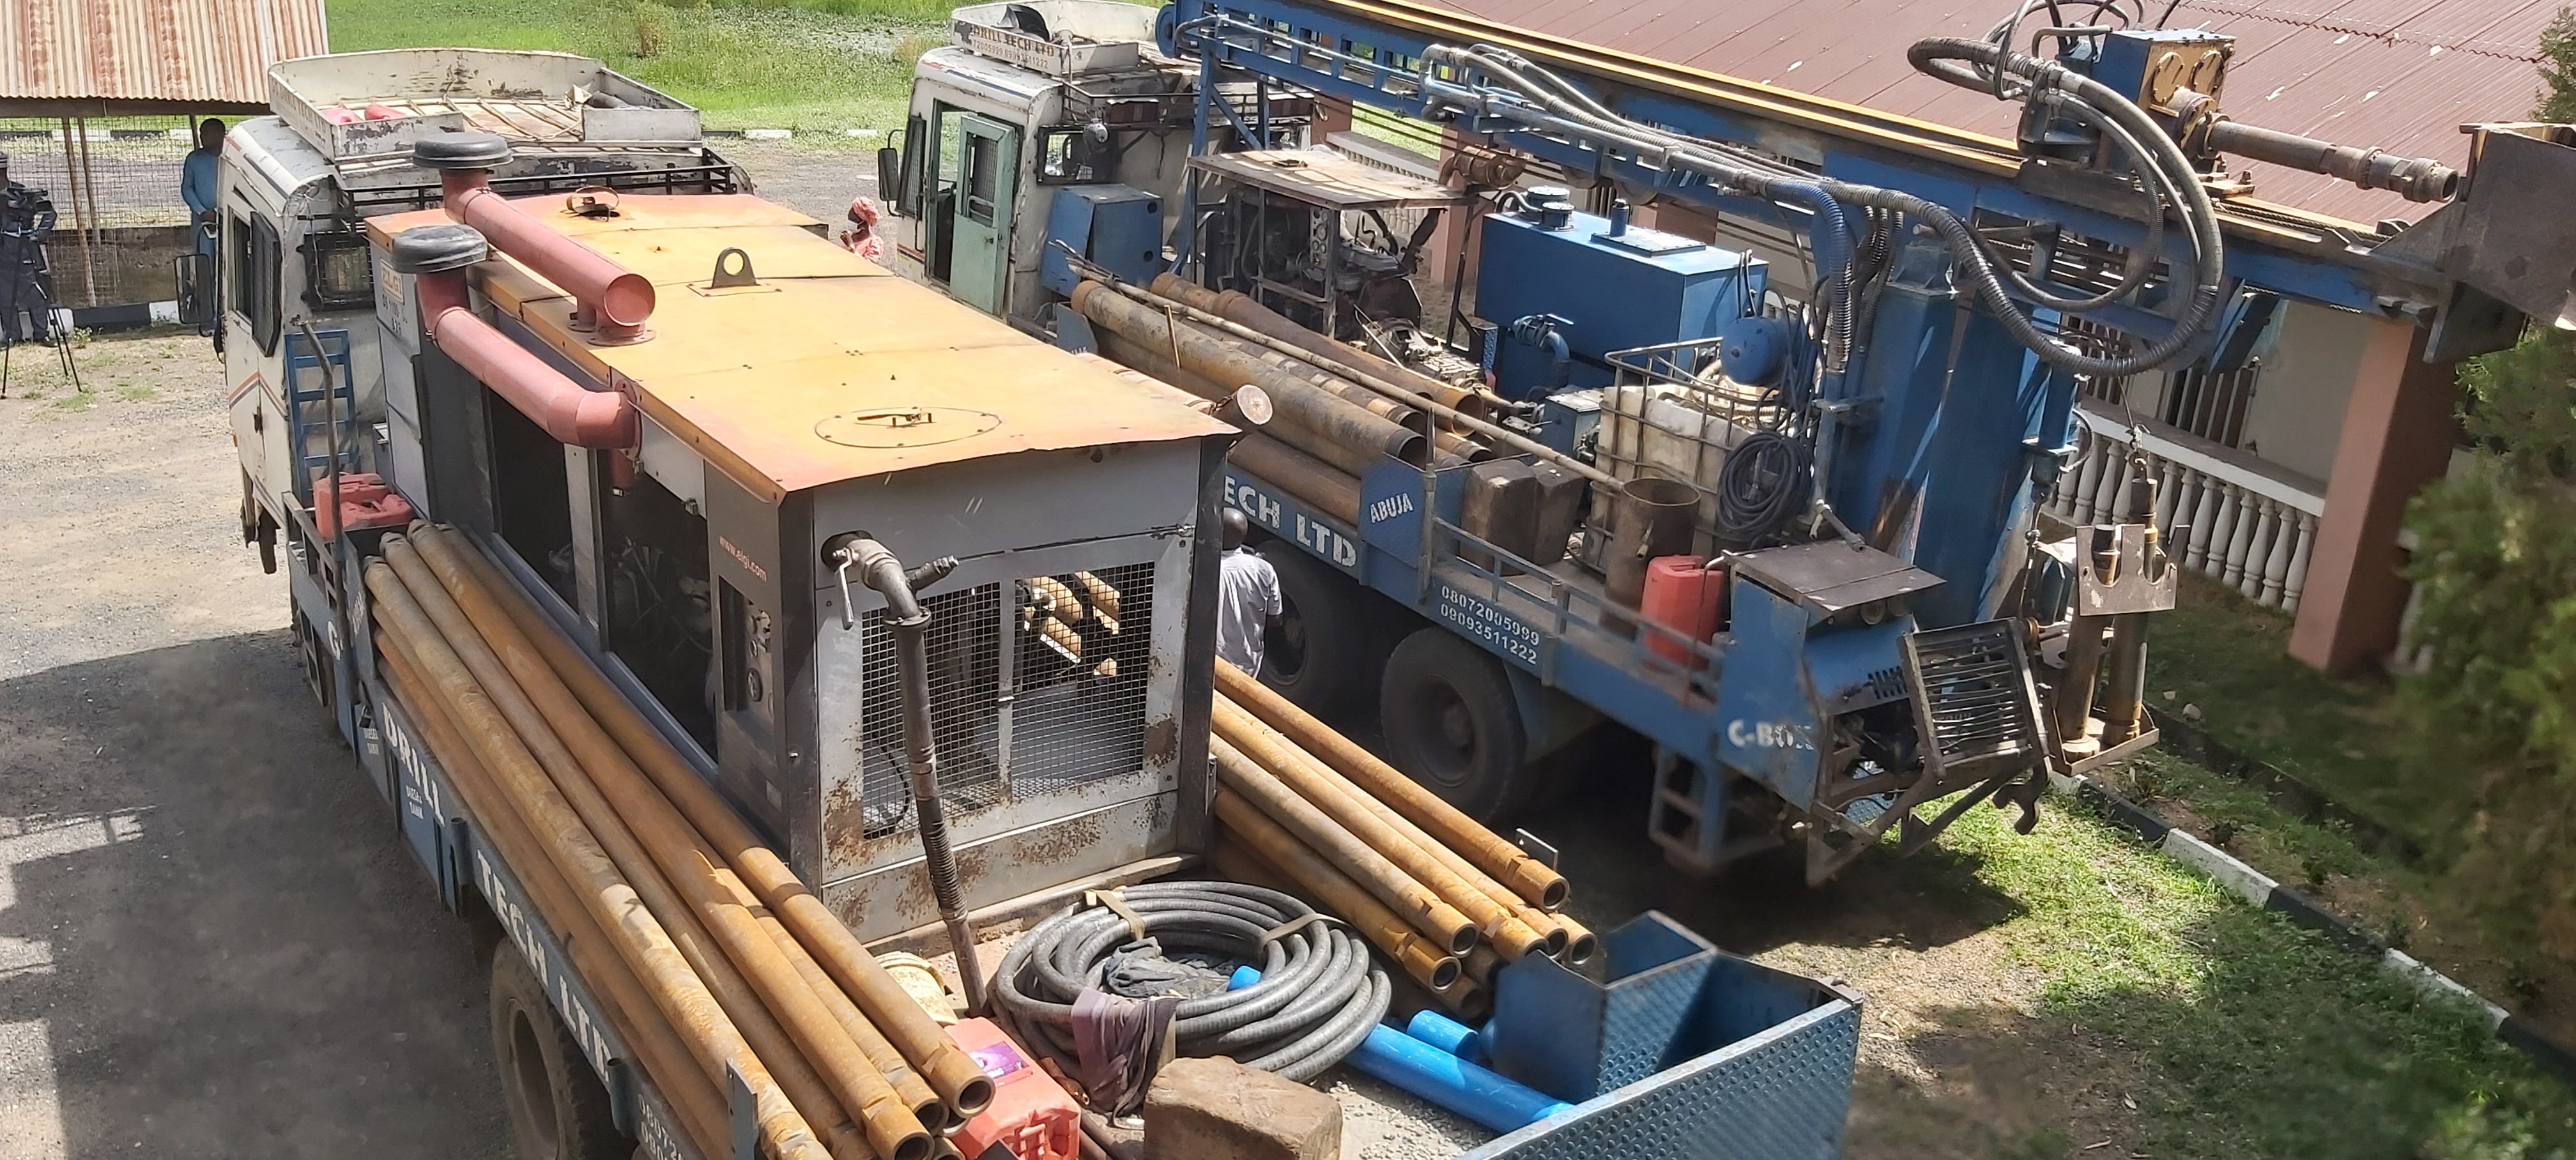 The United Methodist Church in Nigeria purchased a borehole-drilling rig to provide clean water in rural villages. A gift from a United Methodist in Iowa provided the money to purchase the machine. Photo by the Rev. Ande Emmanuel, UM News.